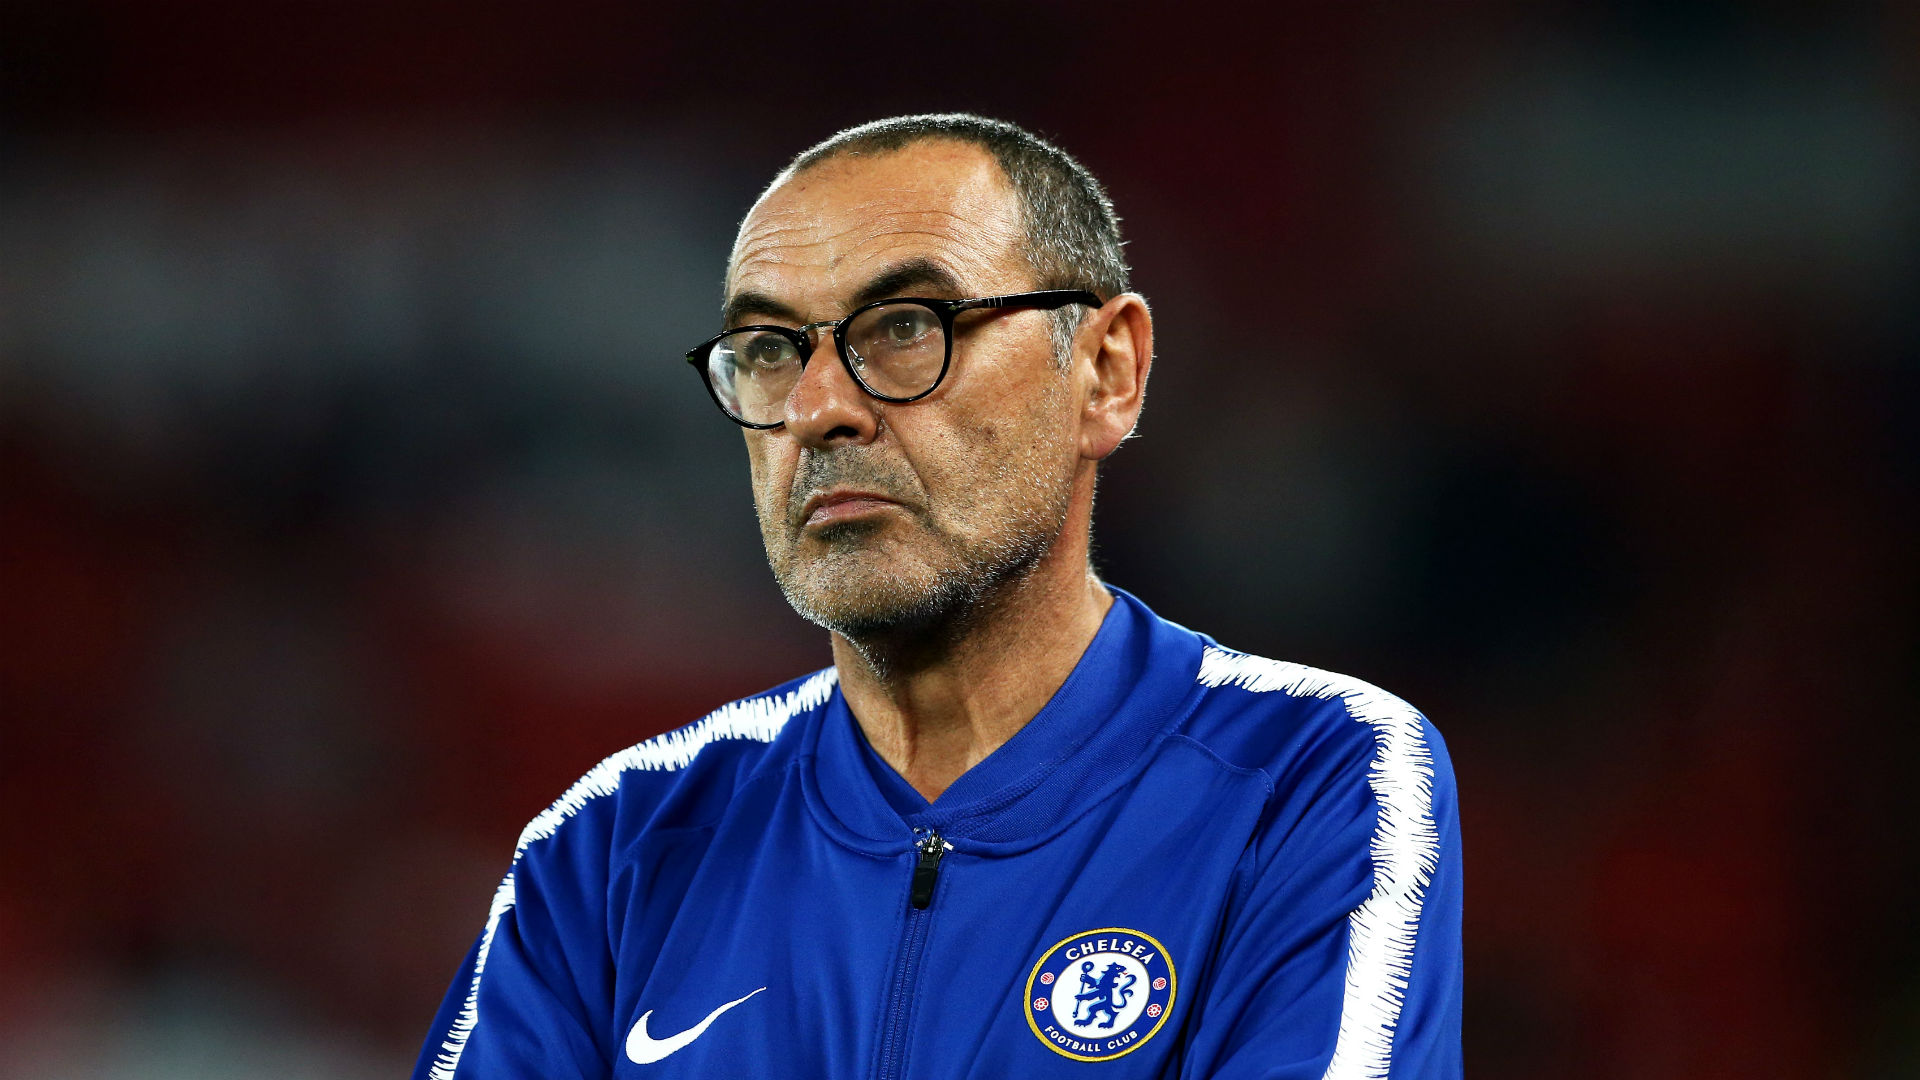 Sarri I don't know how to beat Guardiola ask someone else